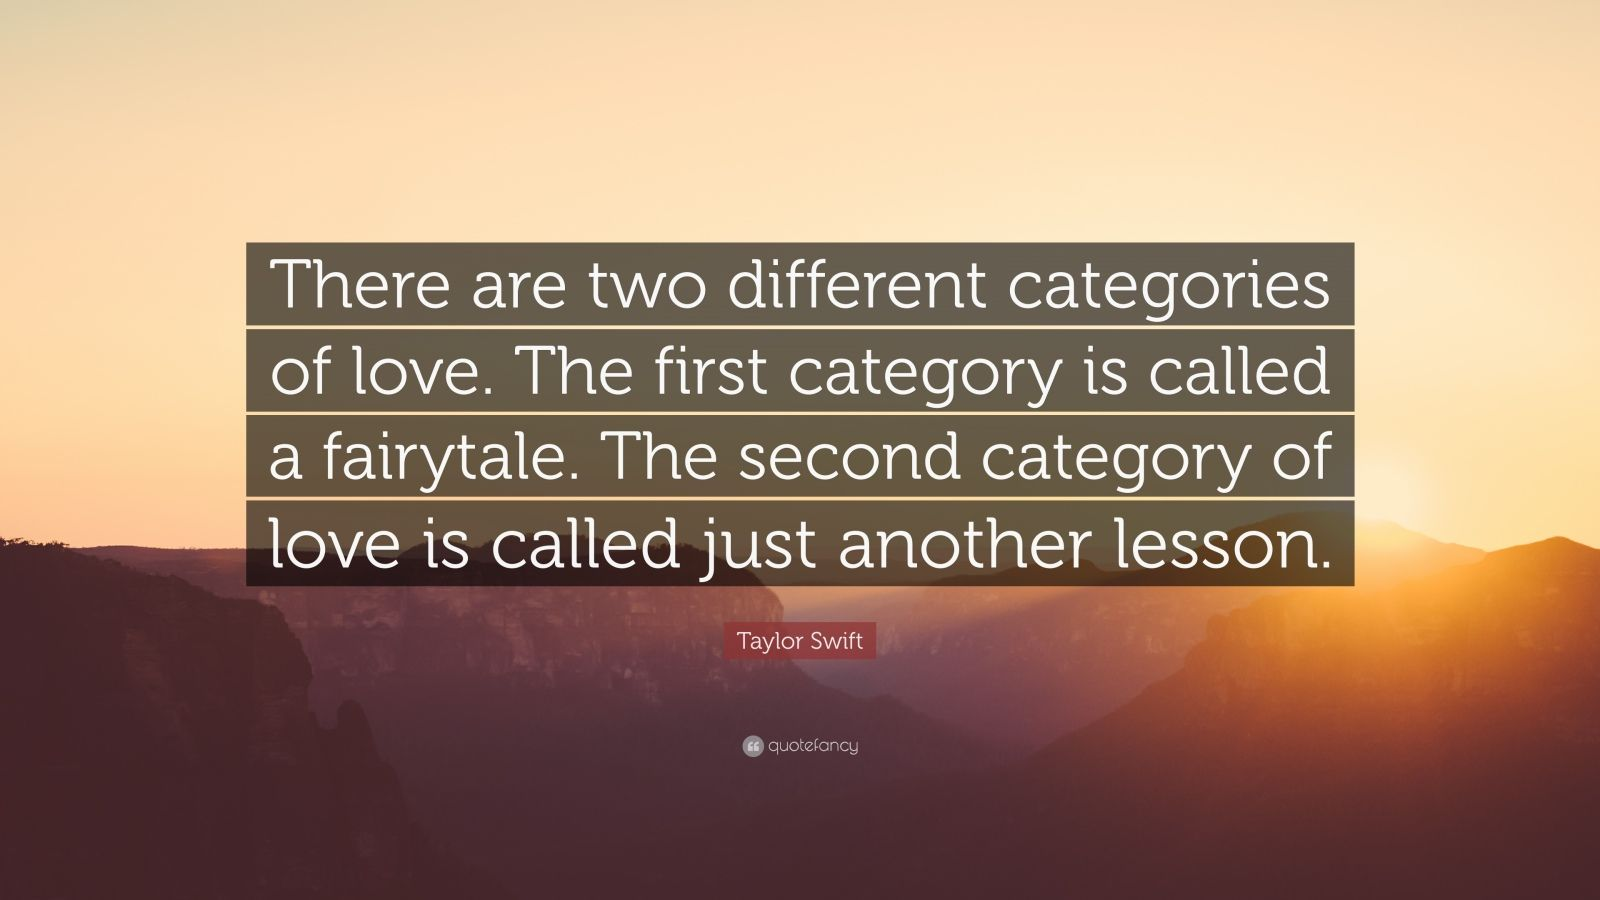 """Taylor Swift Quote: """"There are two different categories of love. The first category is called a fairytale. The second category of love is called just another lesson."""""""